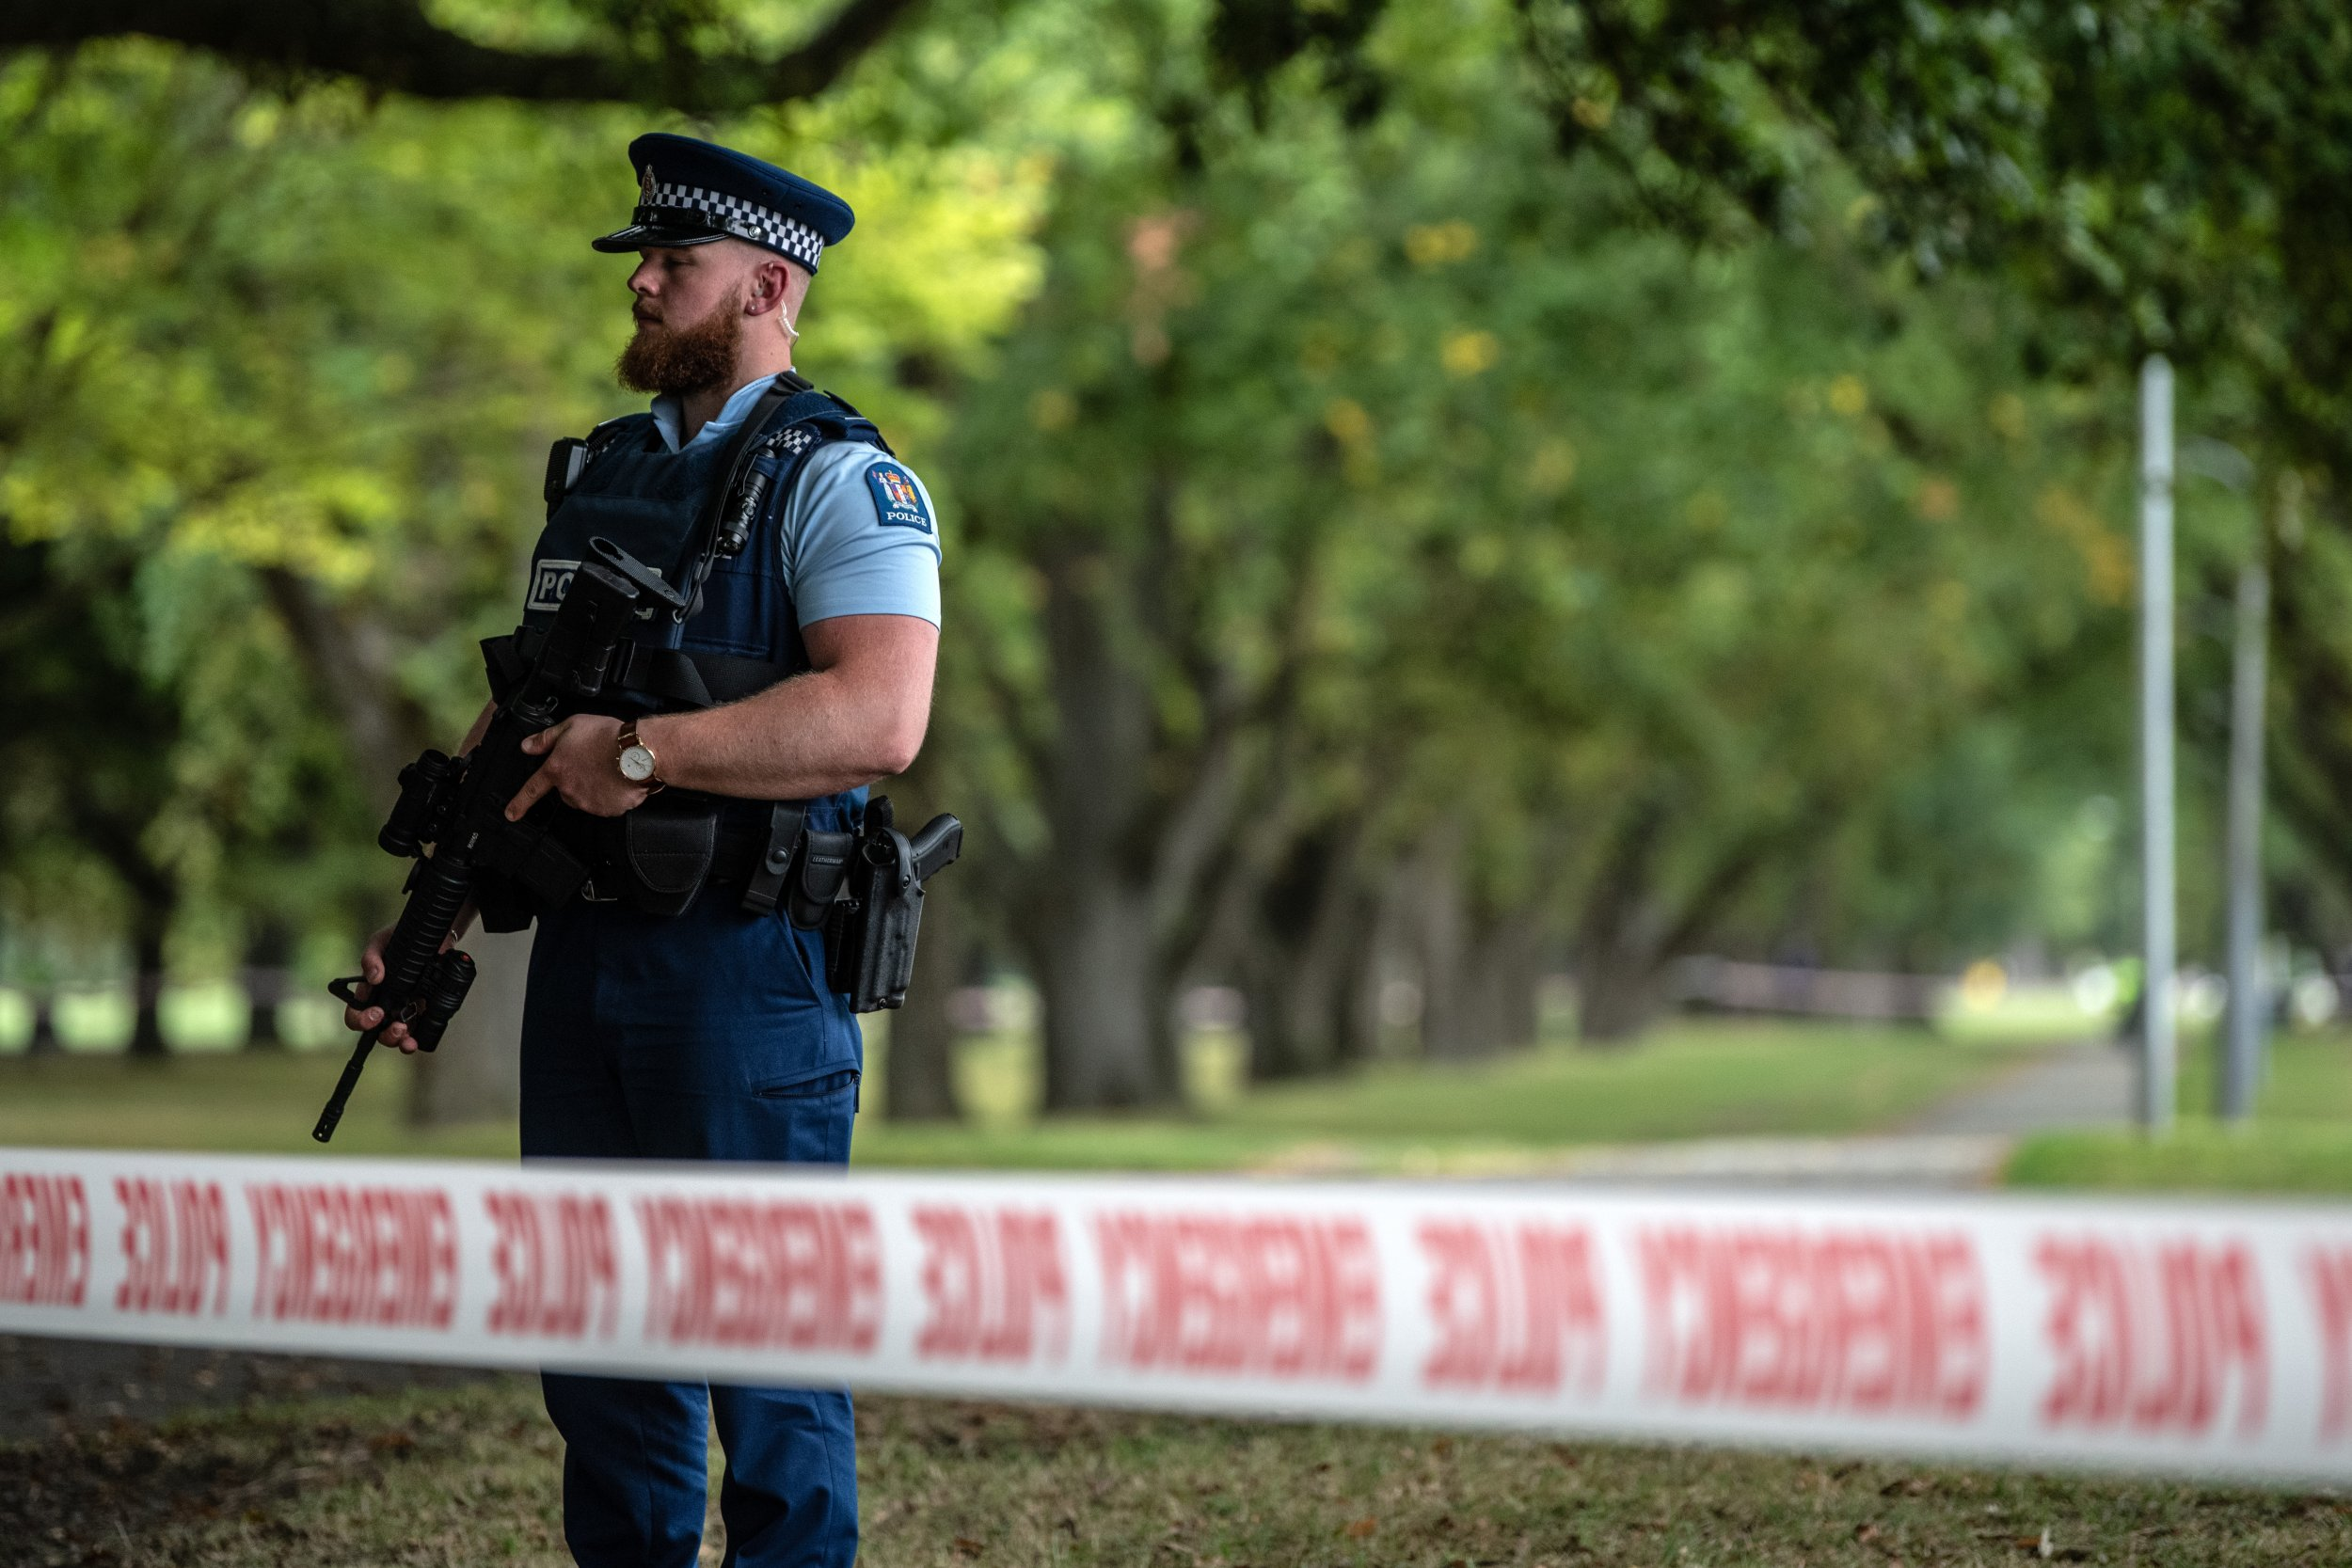 Christchurch, New Zealand attacks